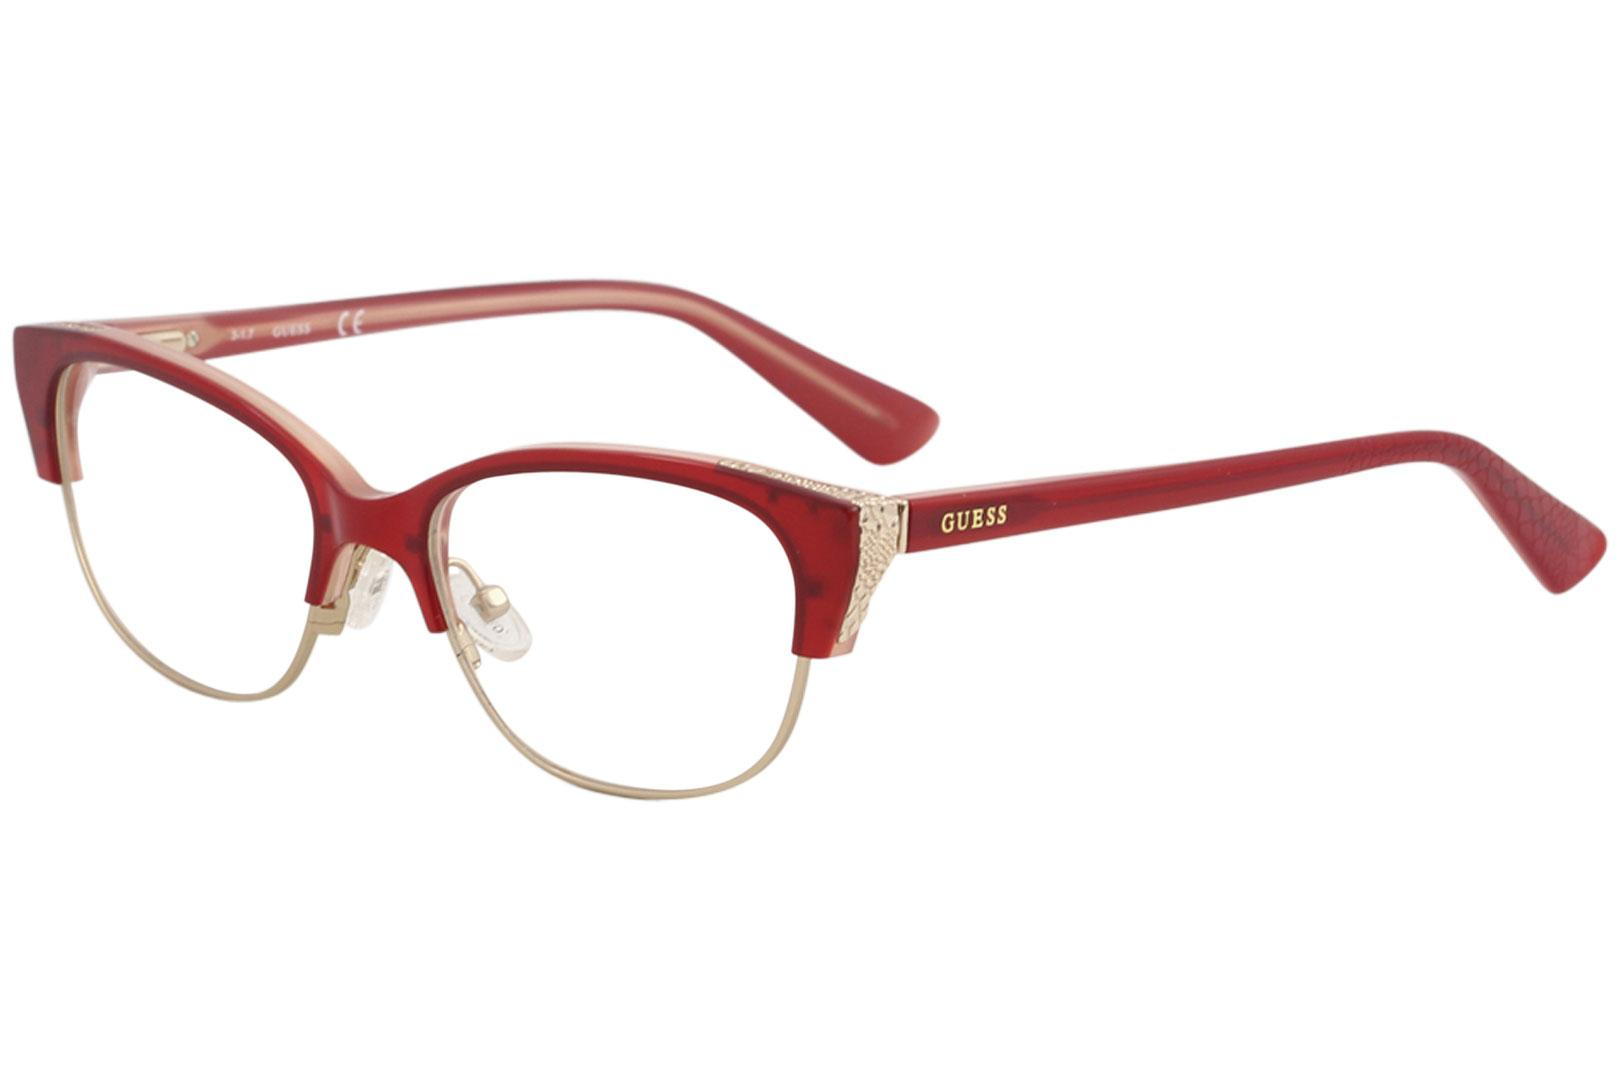 Image of Guess Women's Eyeglasses GU2590 GU/2590 068 Red/Gold Full Rim Optical Frame 52mm - Red - Lens 52 Bridge 17 Temple 135mm